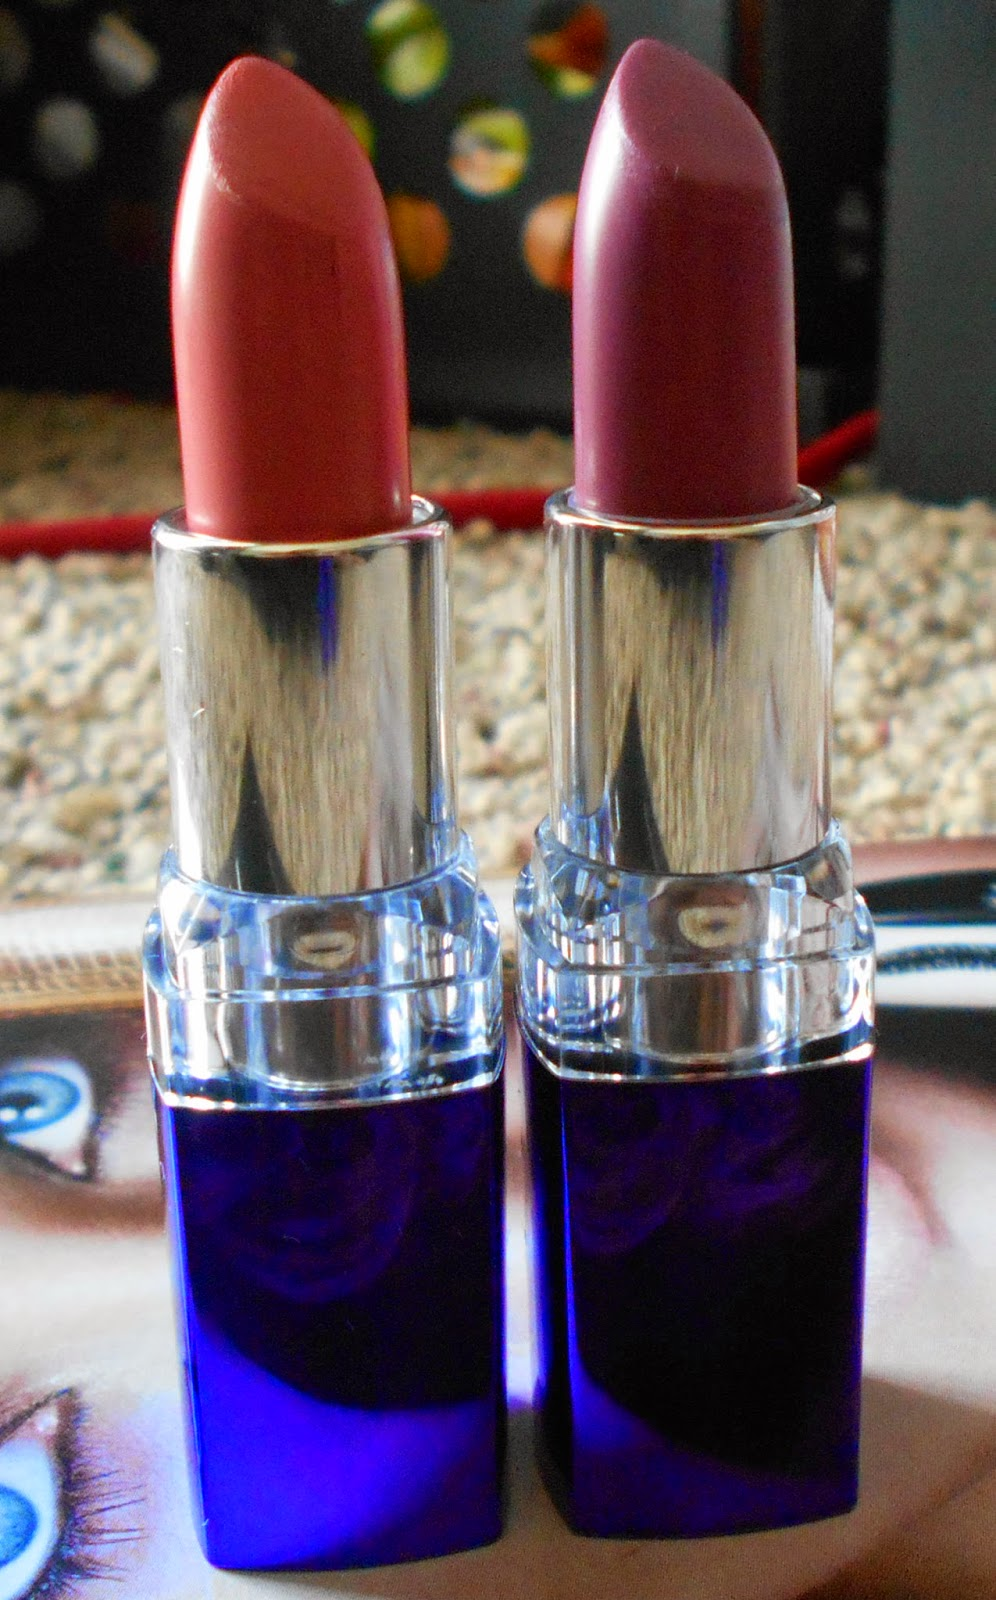 Rimmel London Moisture Renew Lipsticks